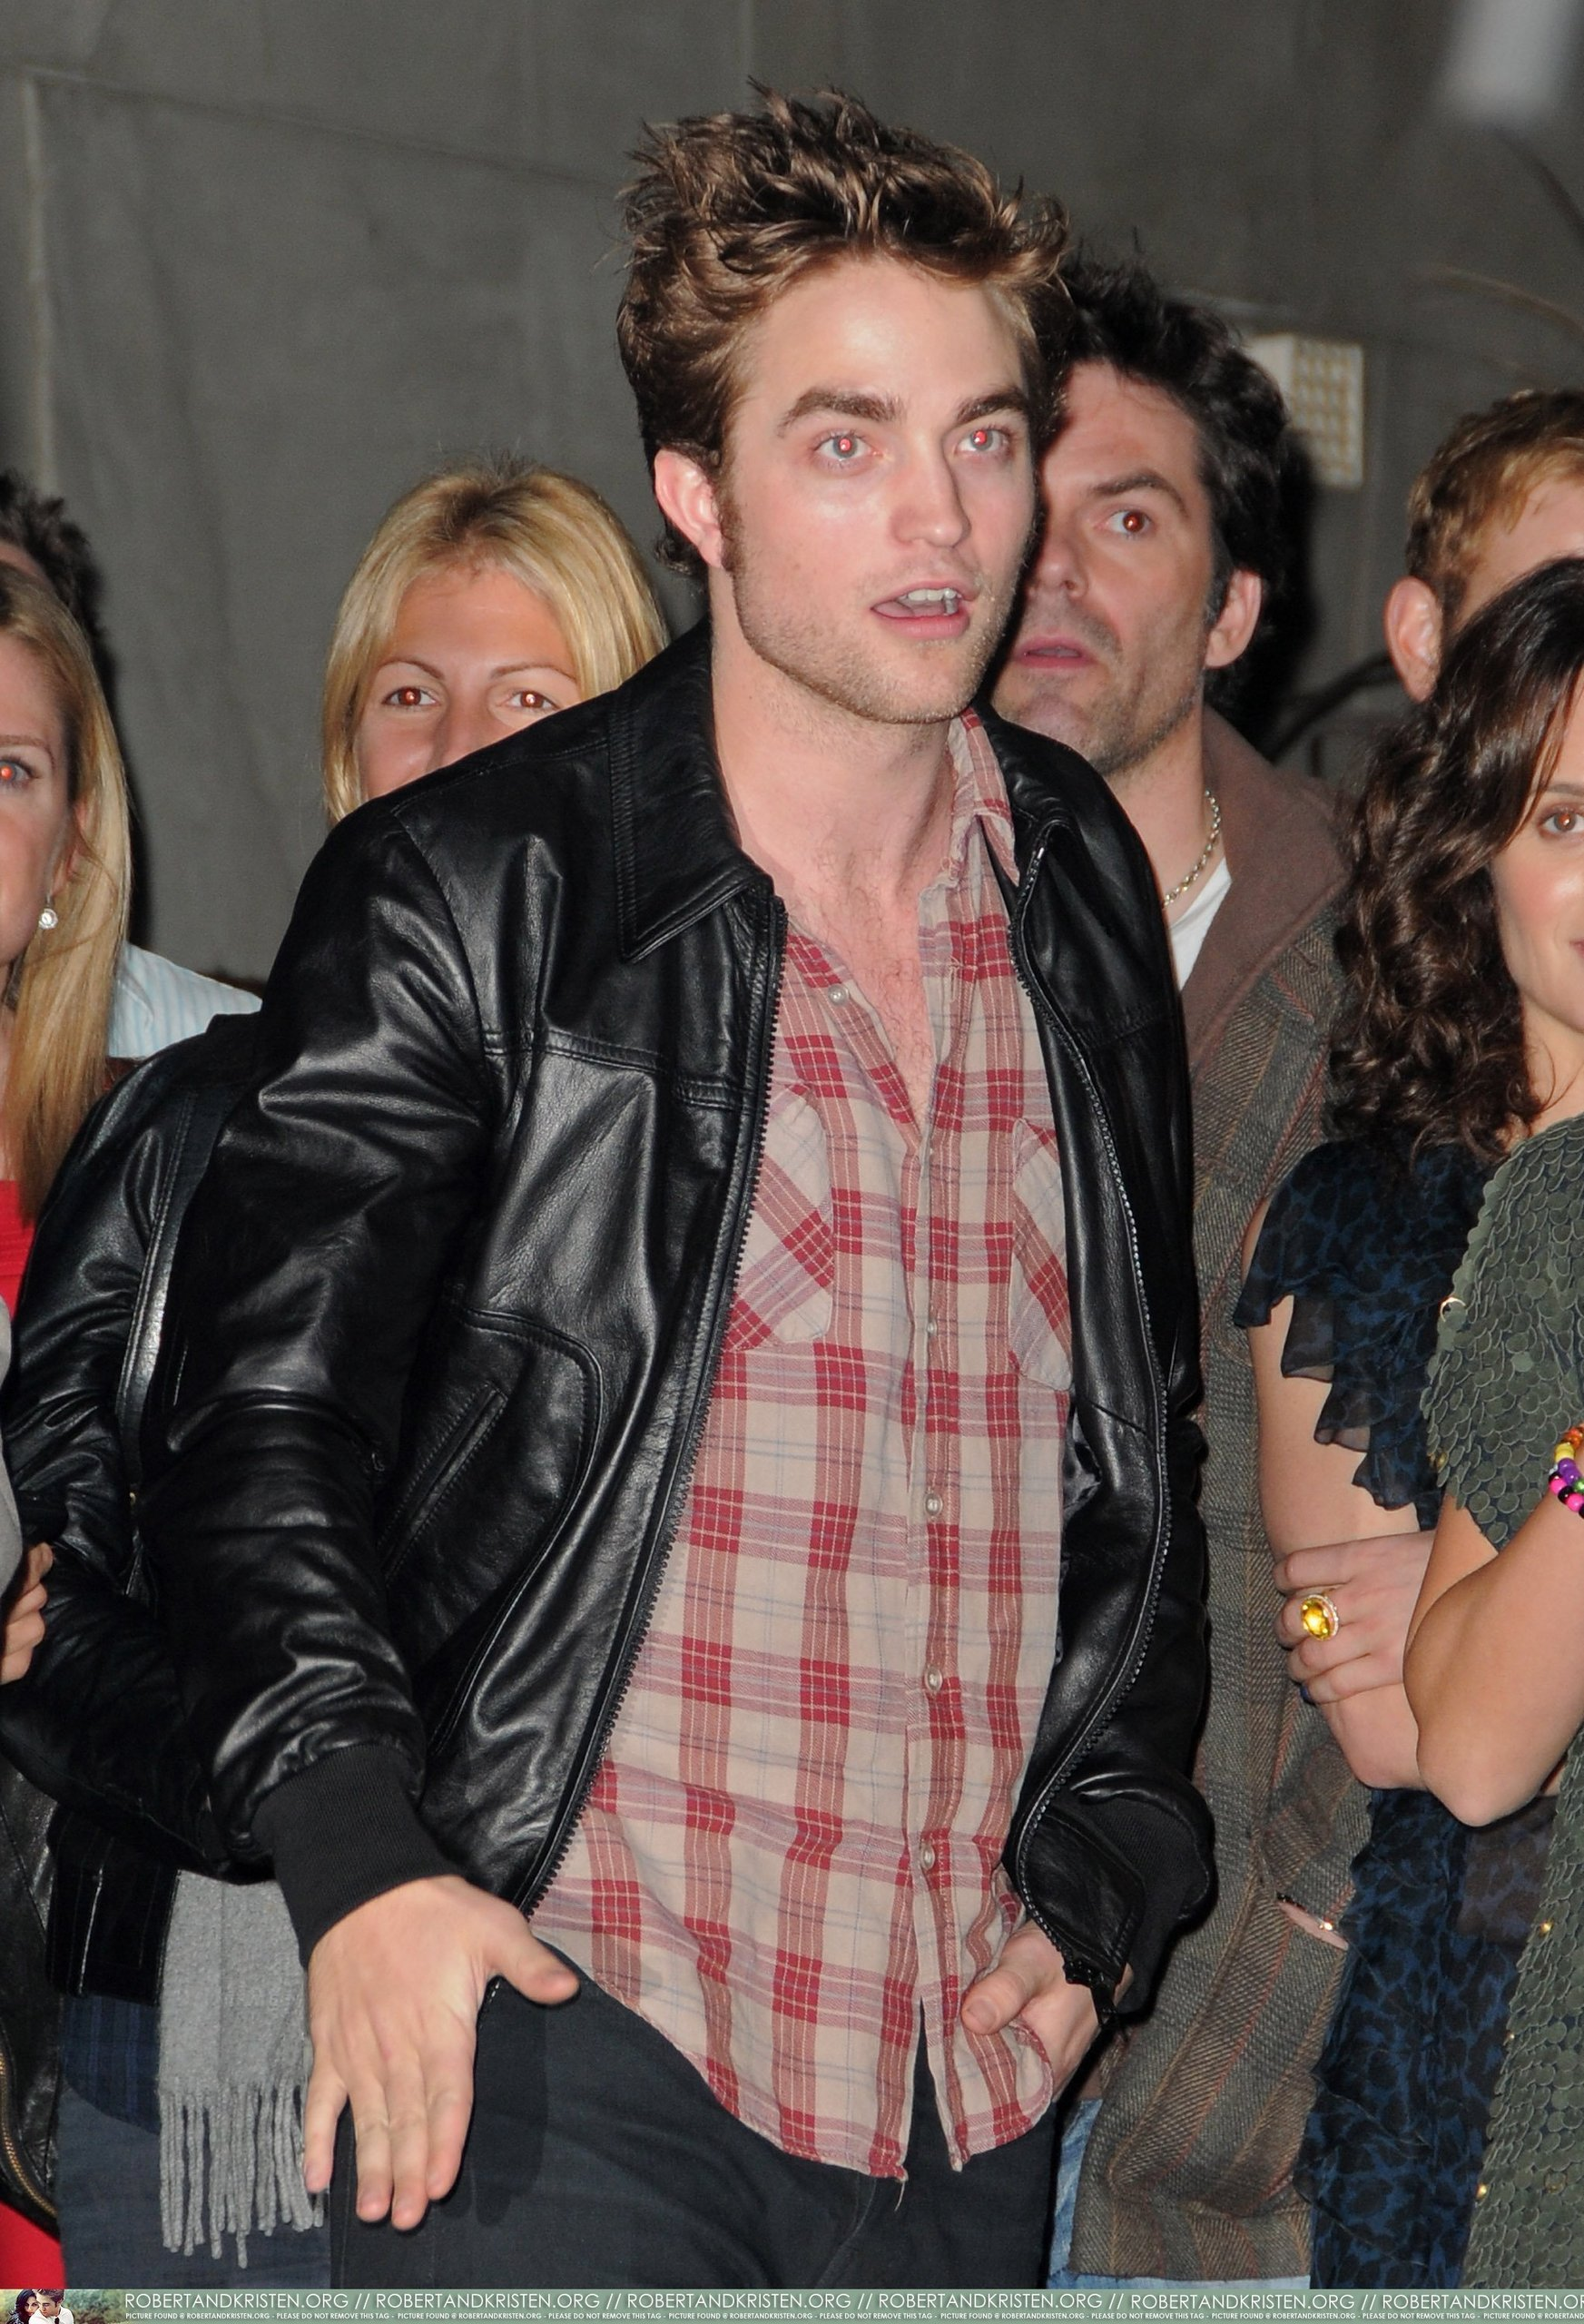 HQ 写真 of Robert Pattinson at Hot Topic